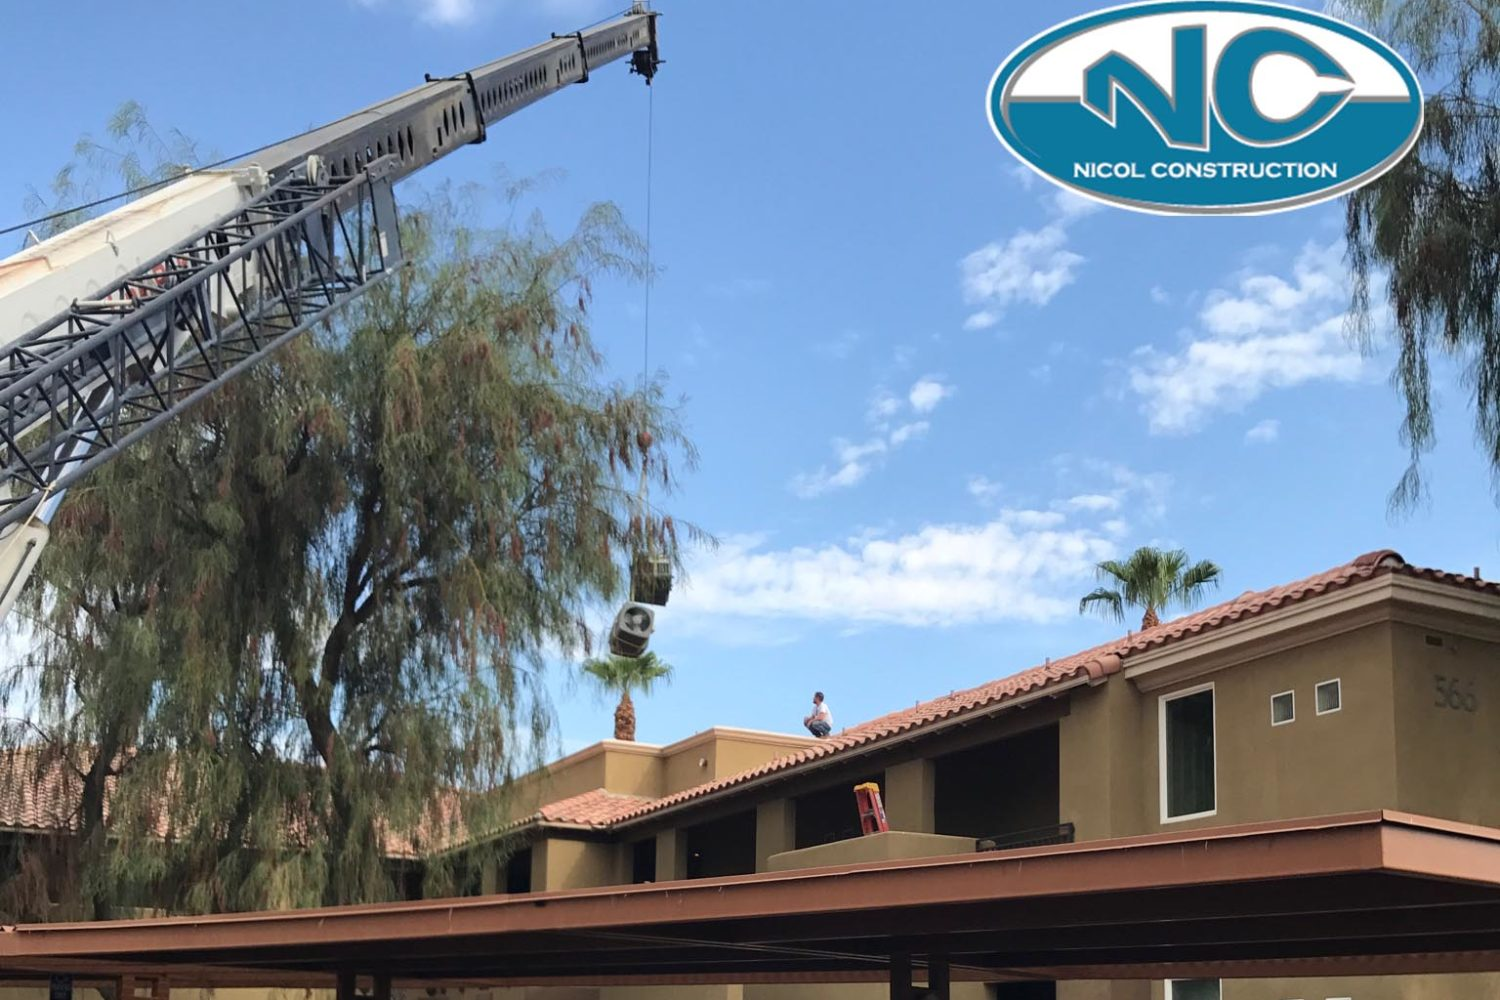 Nicol Construction - The Right Team for Your Next Project